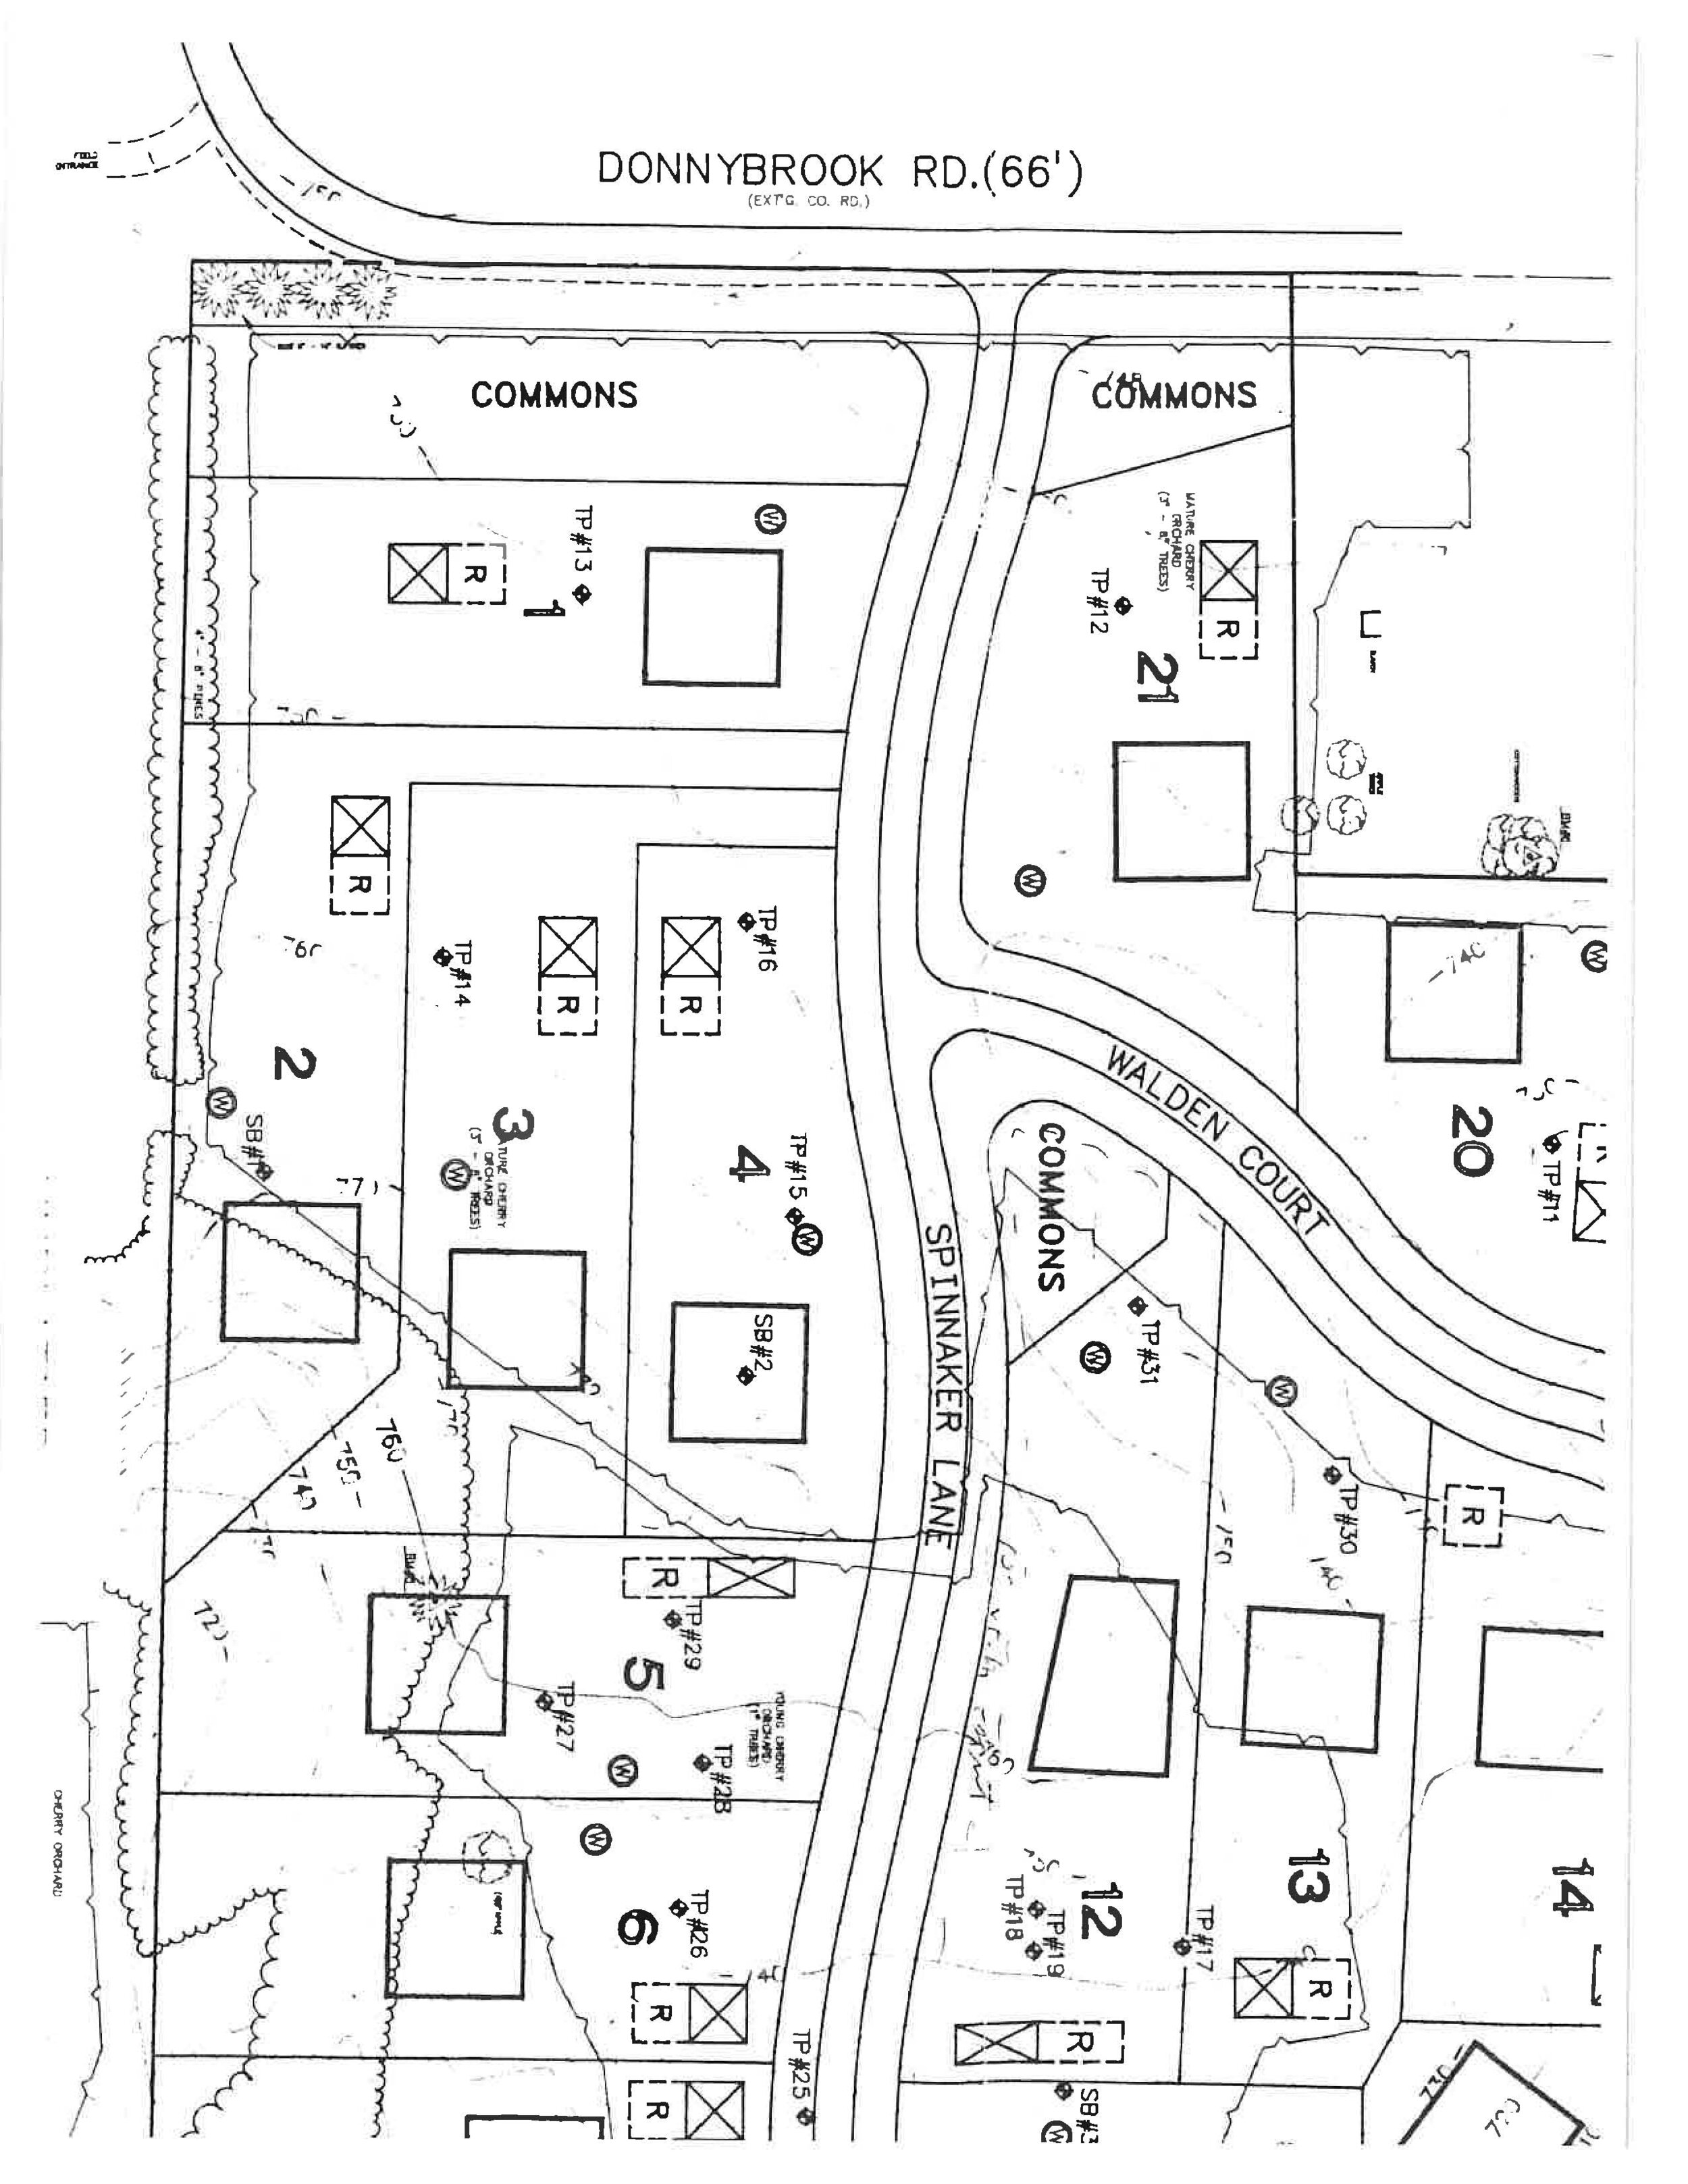 Lot 21 – S Walden Court, Suttons Bay, MI – Water View Vacant Lot Marketing Packet (12).jpg